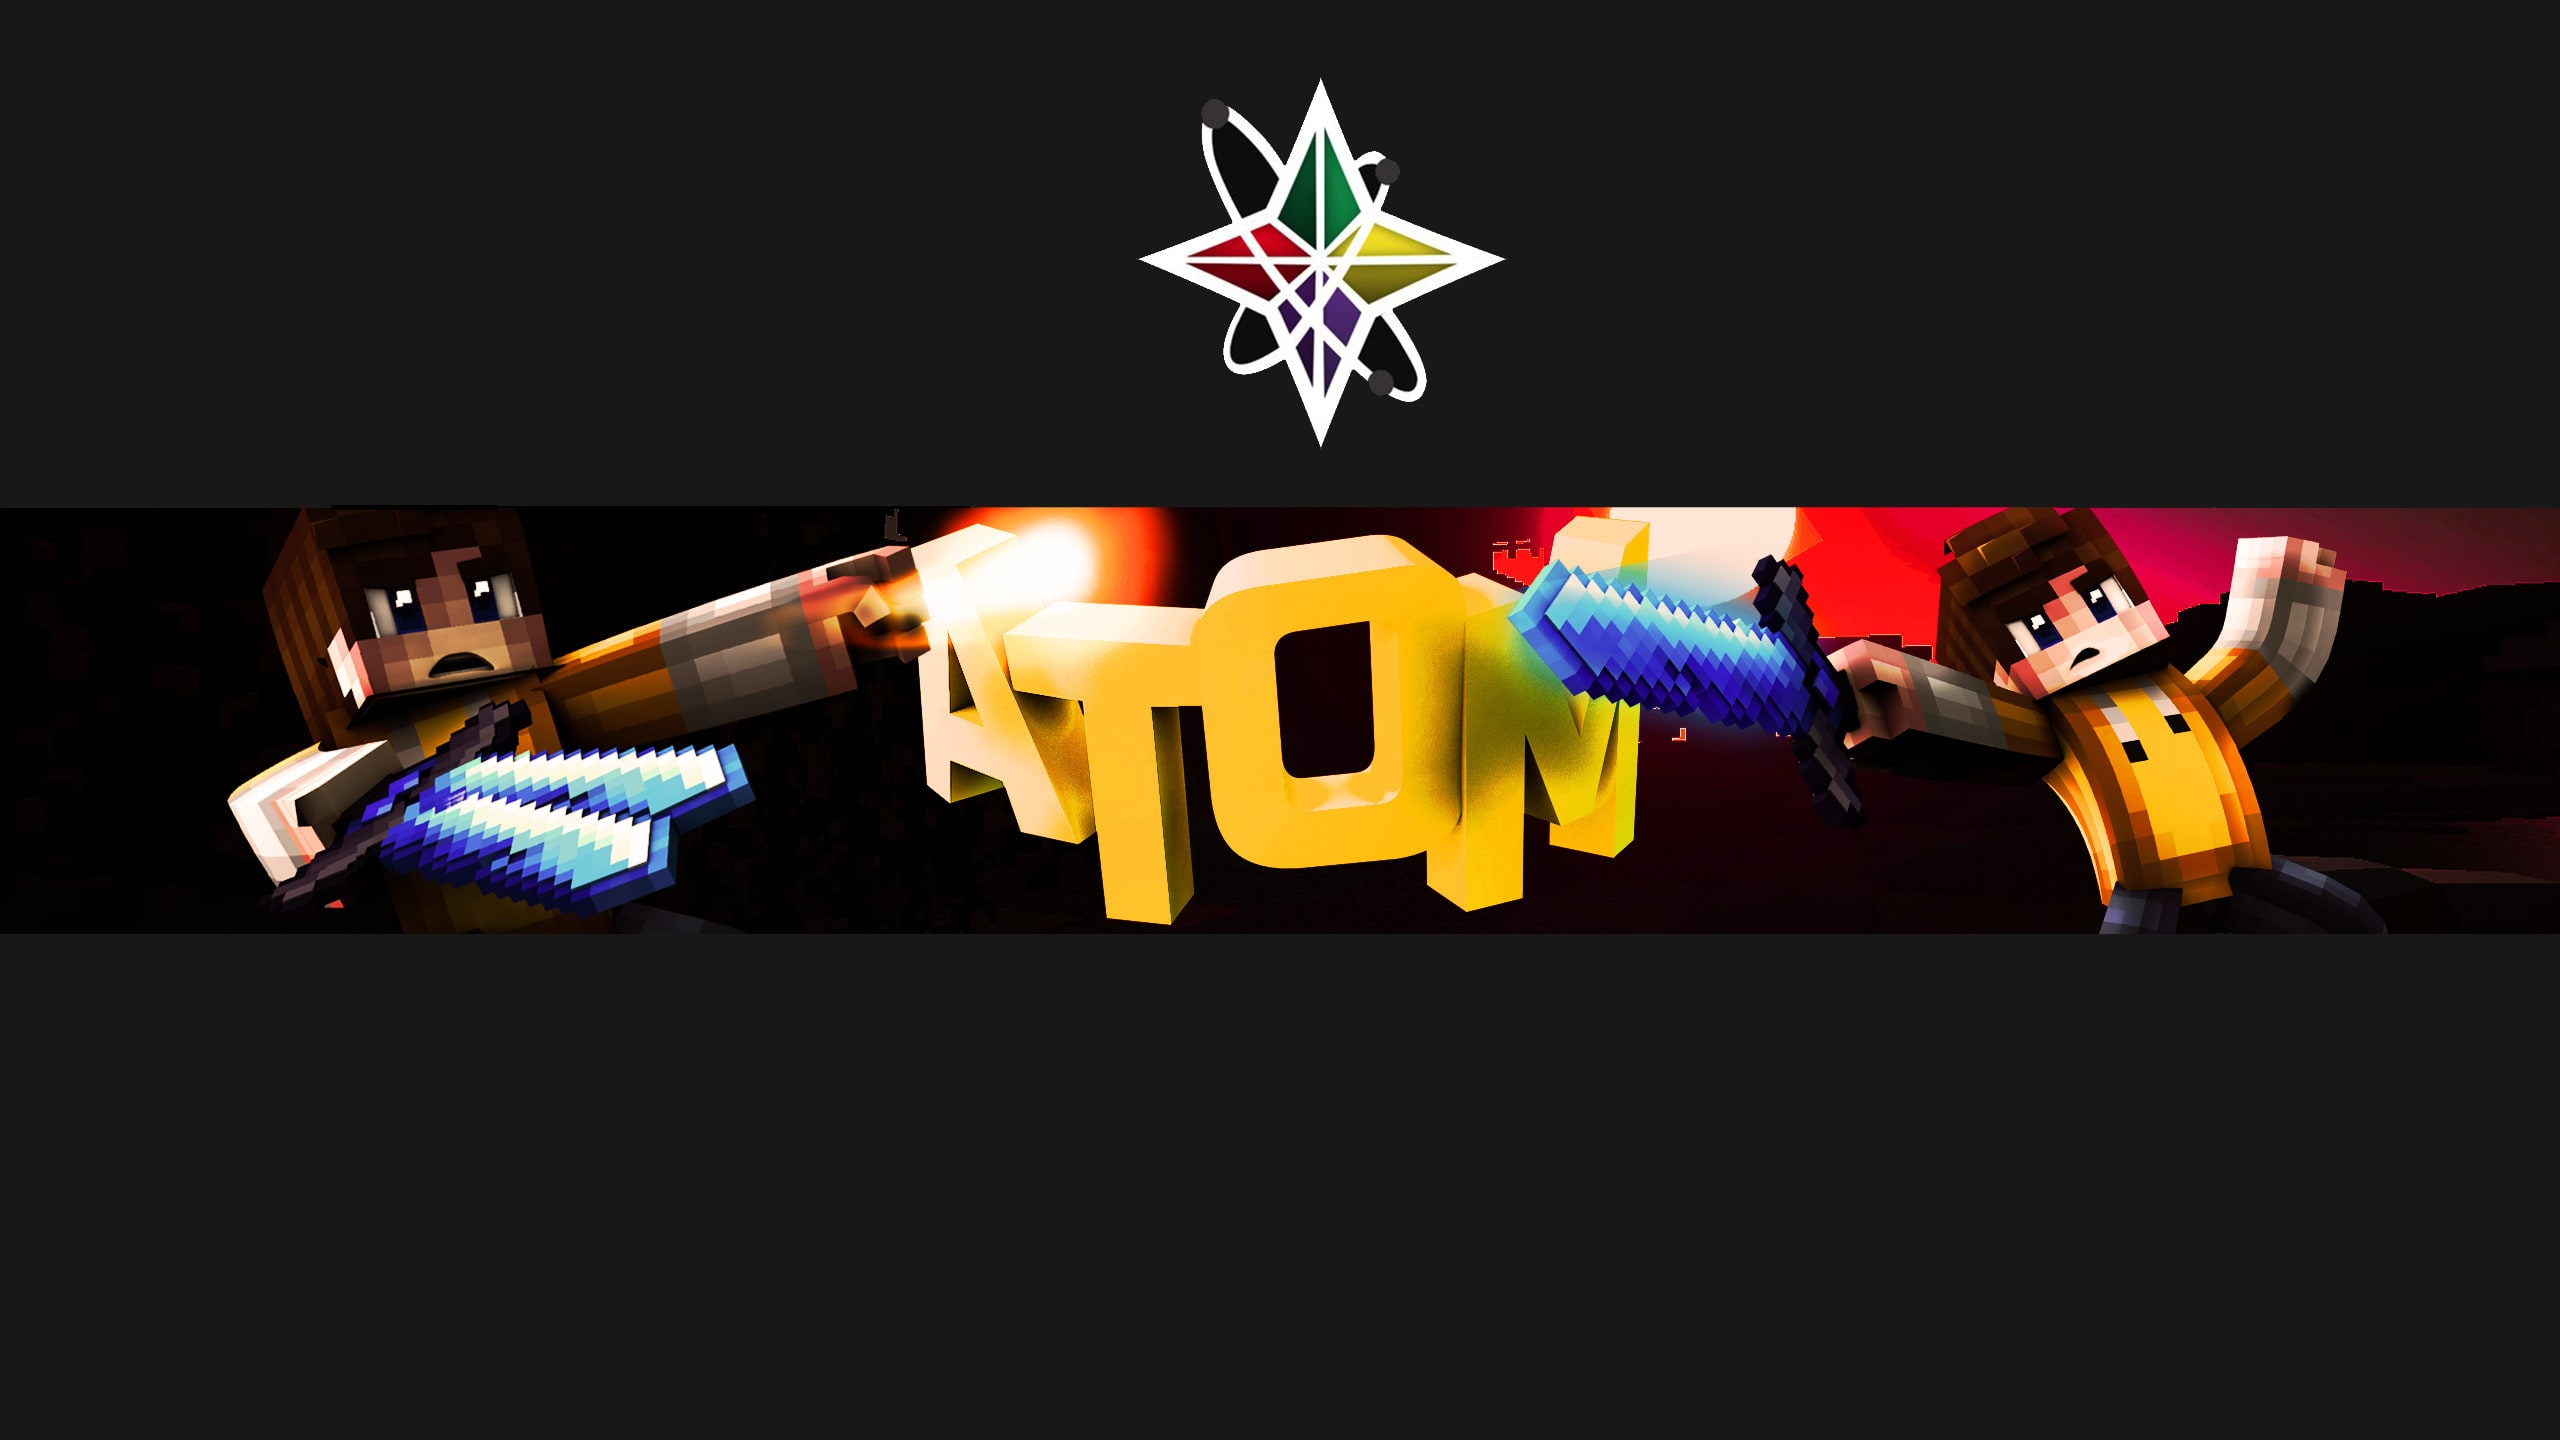 Make You A Professional Hd Minecraft Banner Or Header By Atomfx